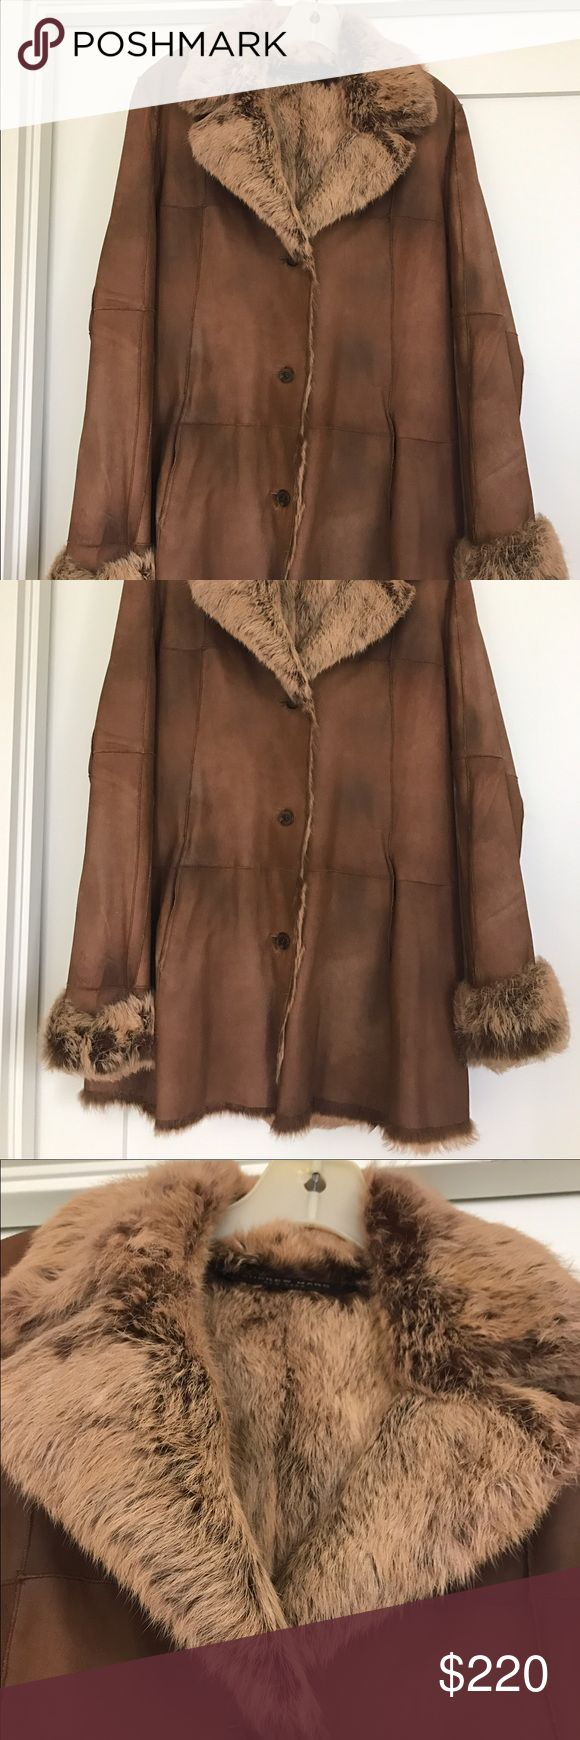 Andrew Marc Fur/Leather Coat Lucious Andrew Marc leather coat with long-coat rabbit lining, cuffs and collar! It is in excellent condition except for one small spot on the back (see photo). Retailed for $569!!!! Andrew Marc Jackets & Coats